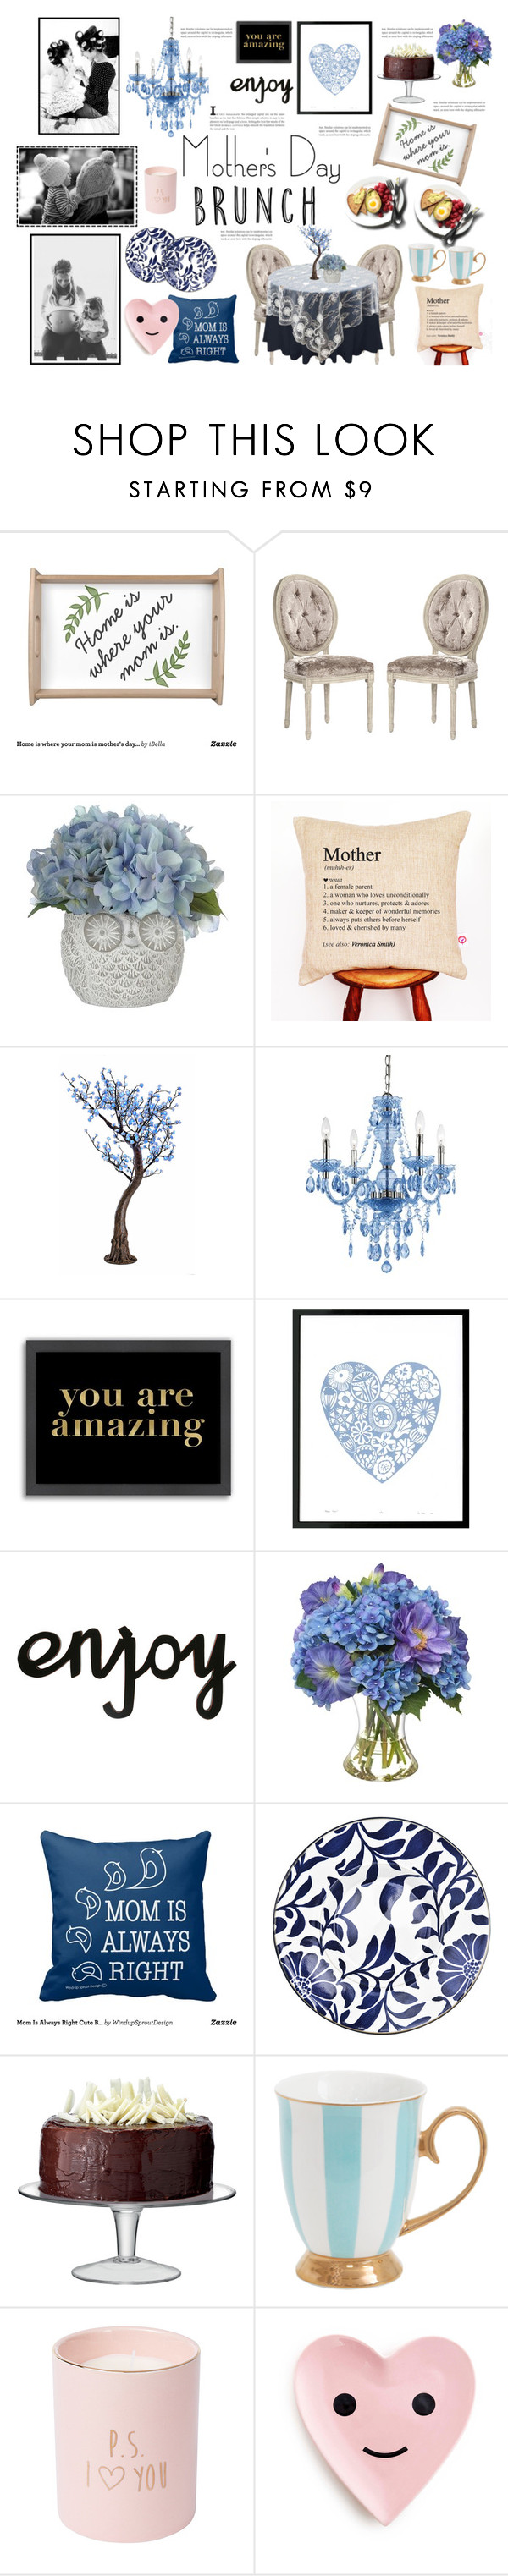 """""""Mother's Day Brunch (Happy Mother's Day!)"""" by anacarolinaferraz ❤ liked on Polyvore featuring interior, interiors, interior design, home, home decor, interior decorating, J.A.K., AF Lighting, Americanflat and Lu West"""